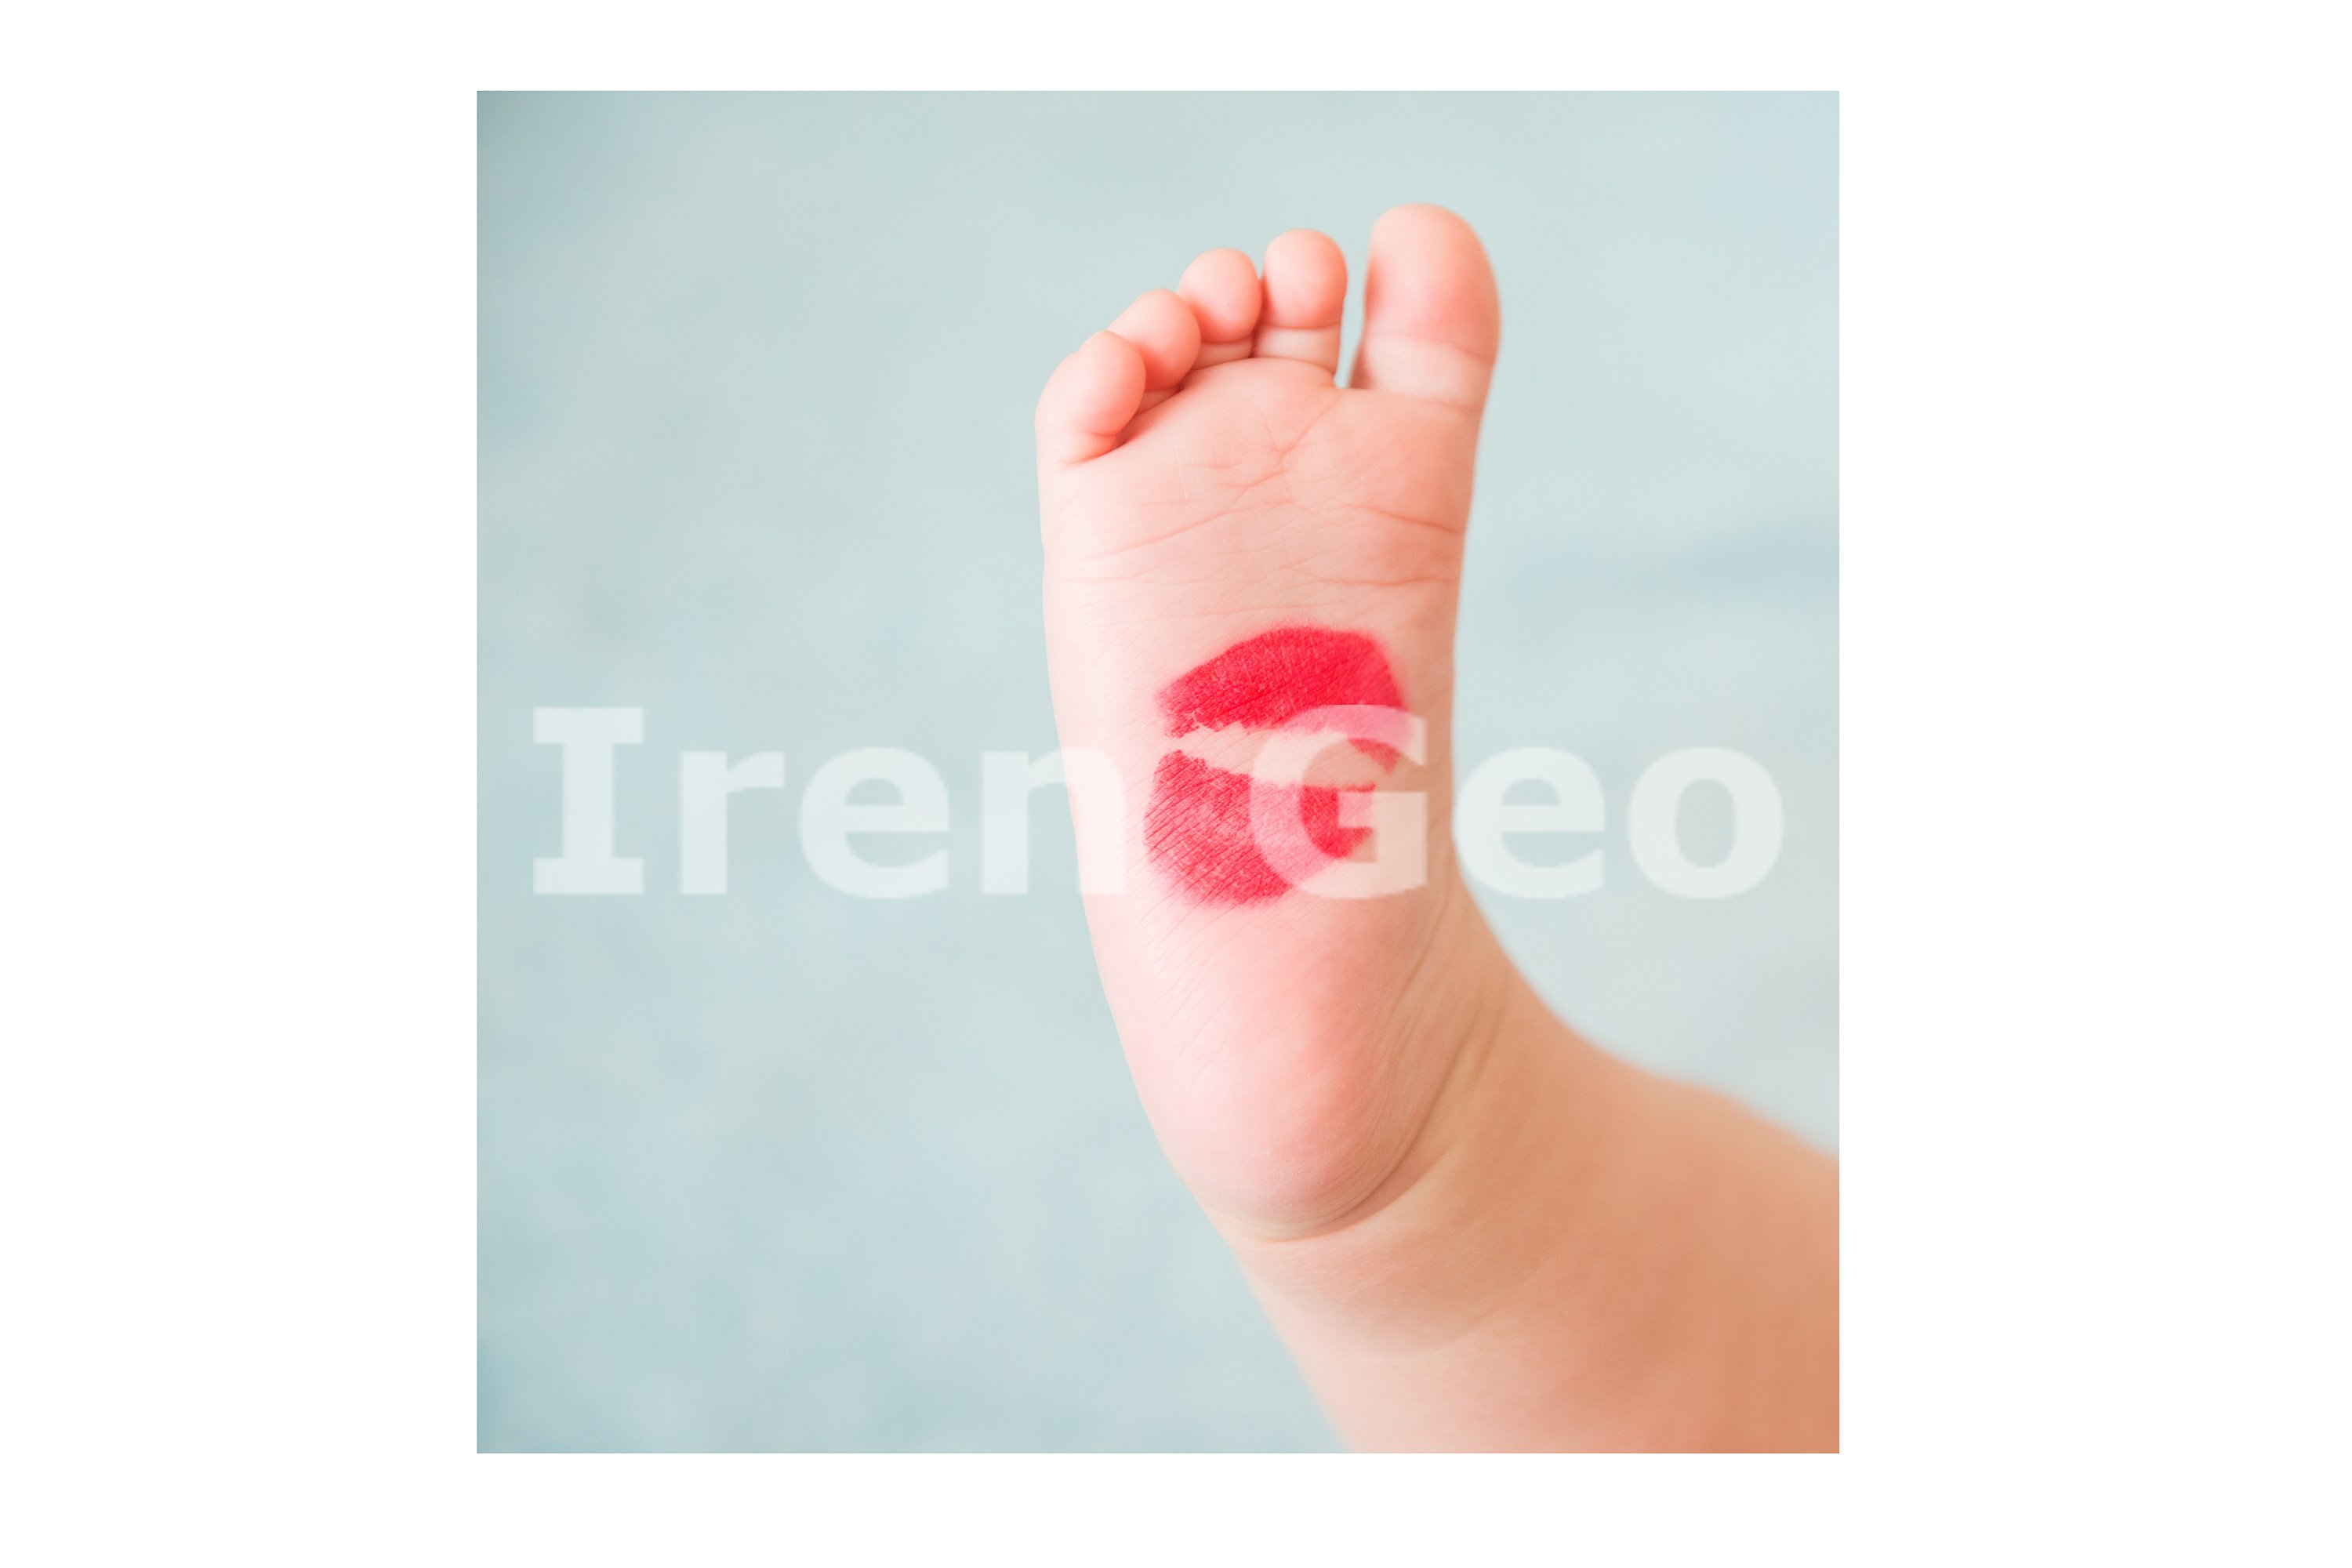 Baby's small foot with red lipstick from a kiss example image 1